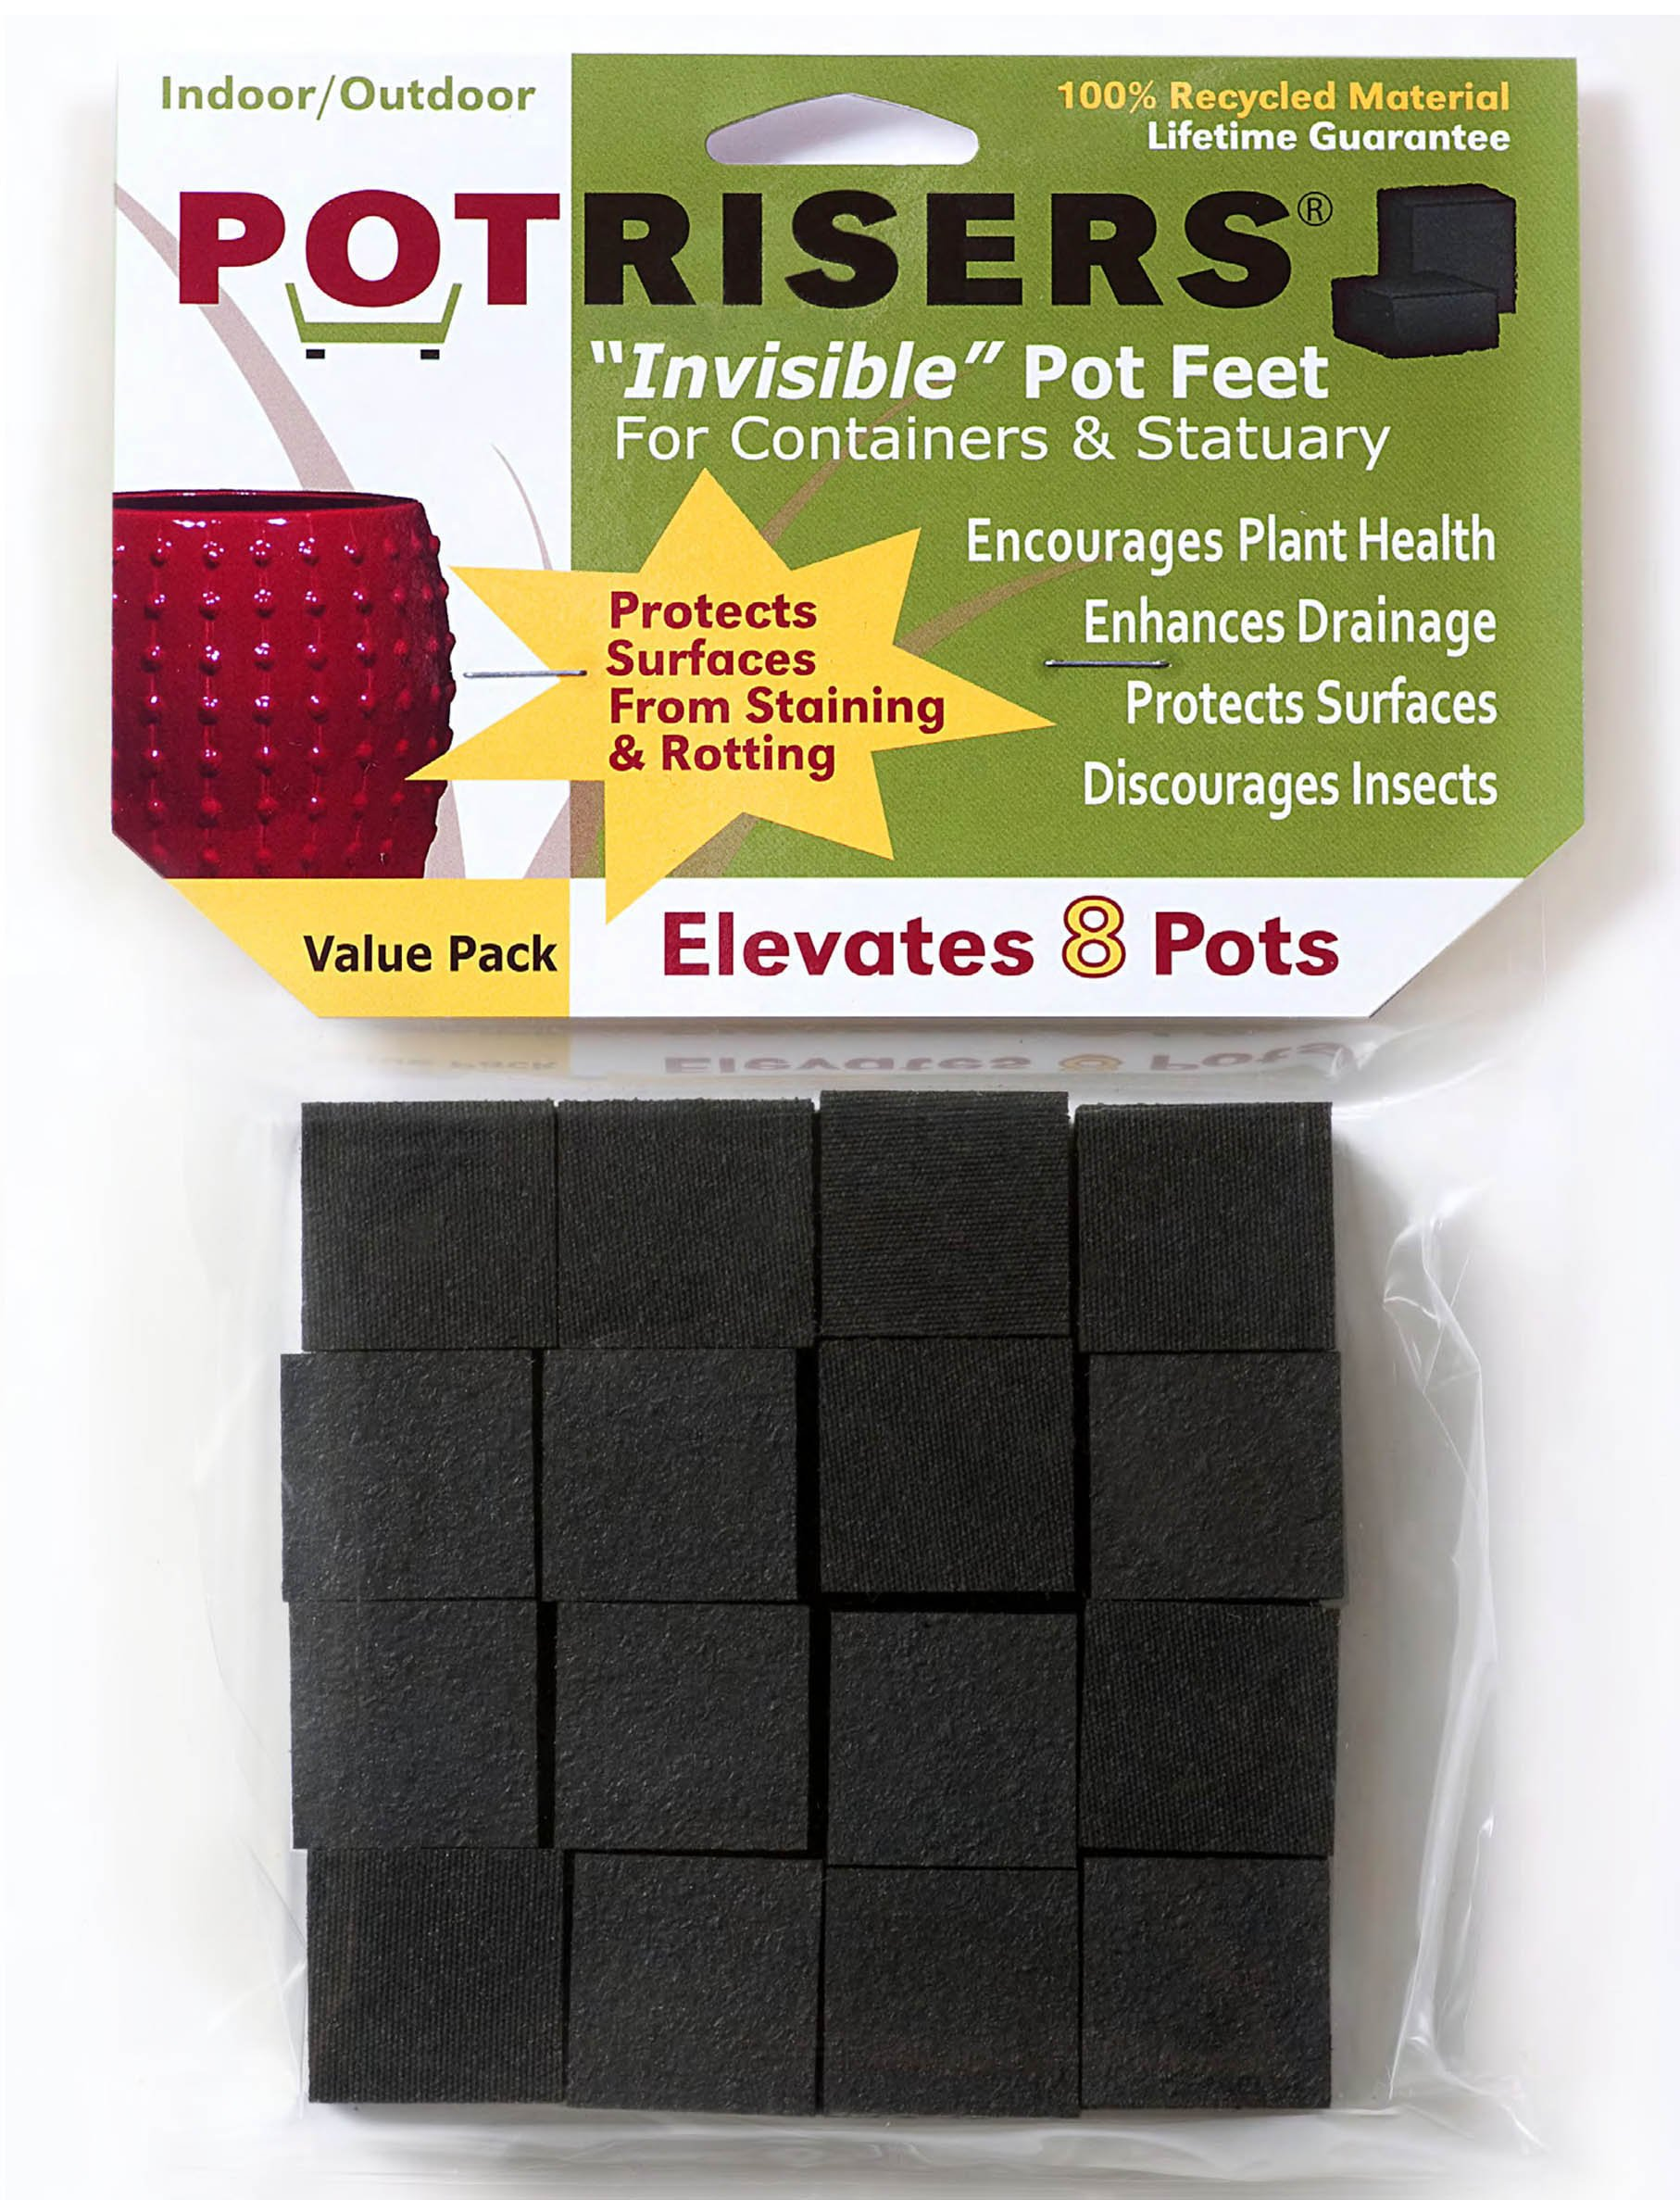 Potrisers 32 Pack of Standard Risers (supports 8-10 small to medium pots and statuary) by Potrisers